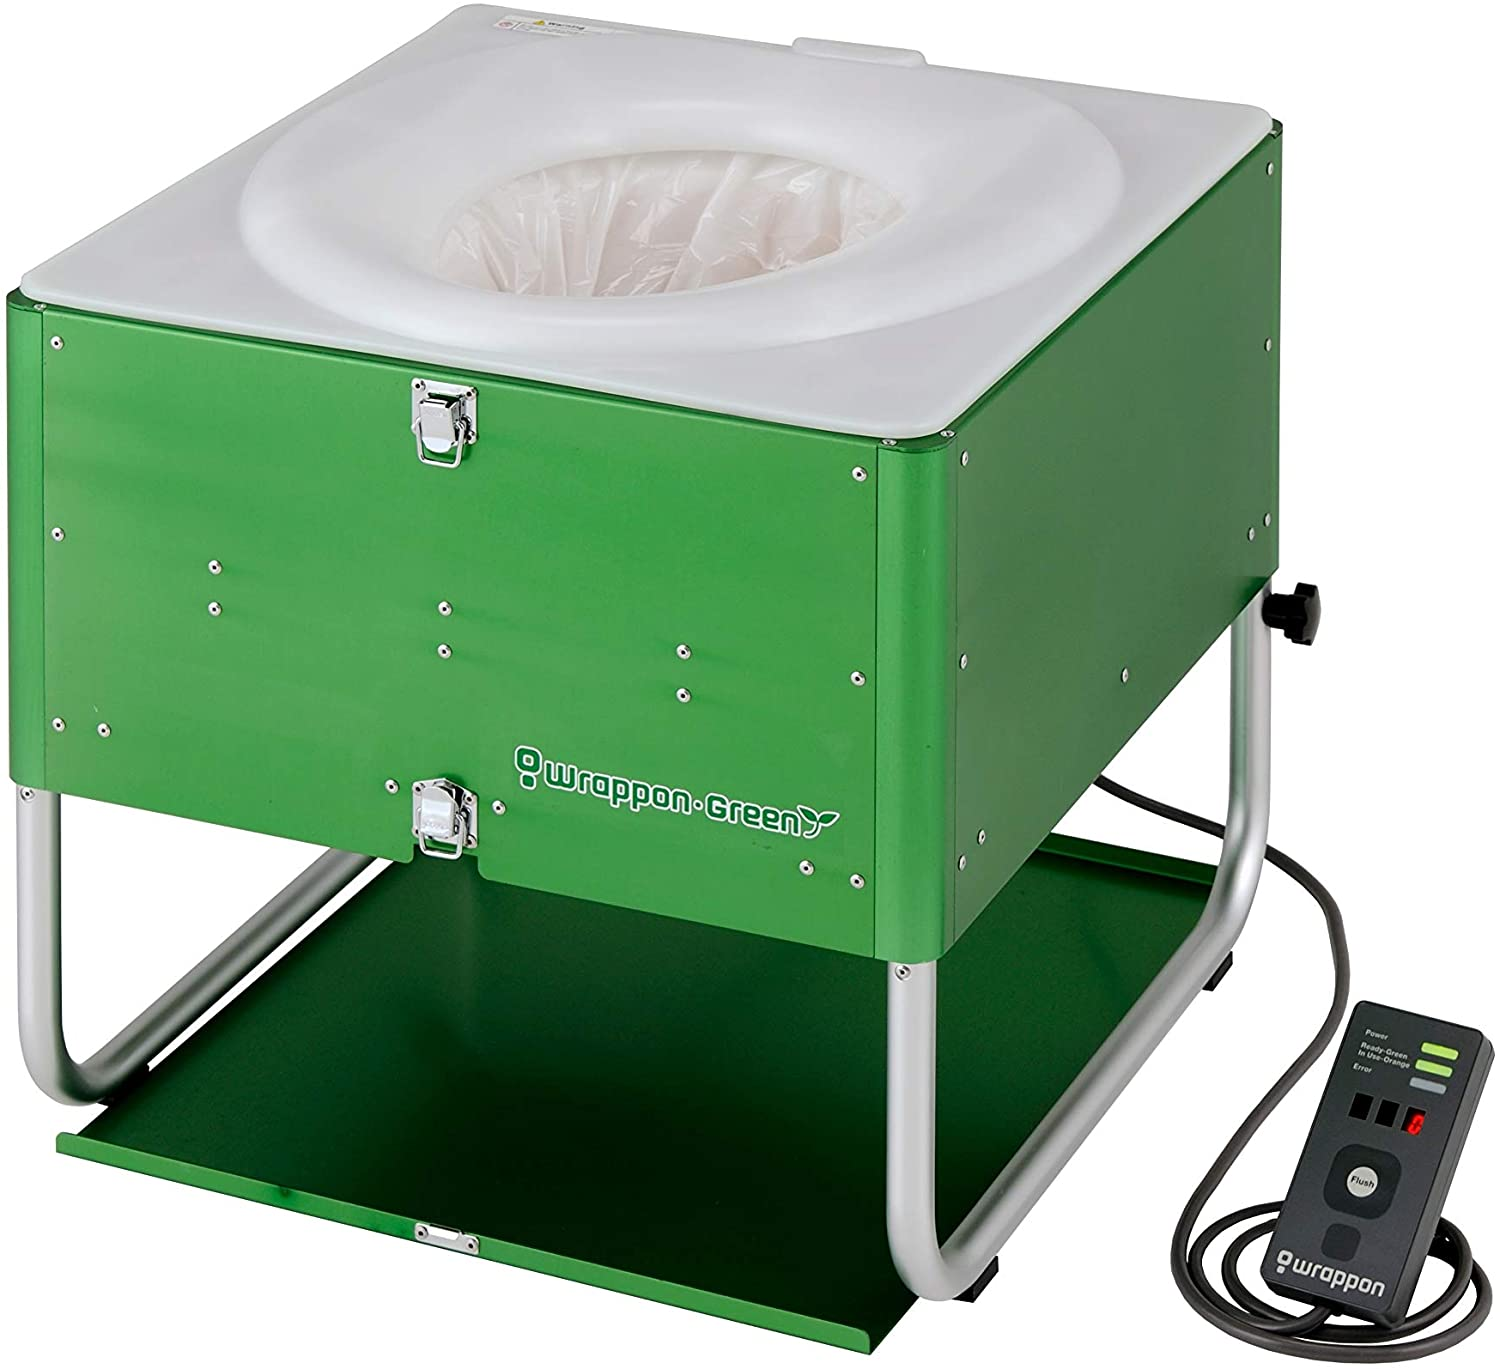 wrappon green portable toilet no fluids for